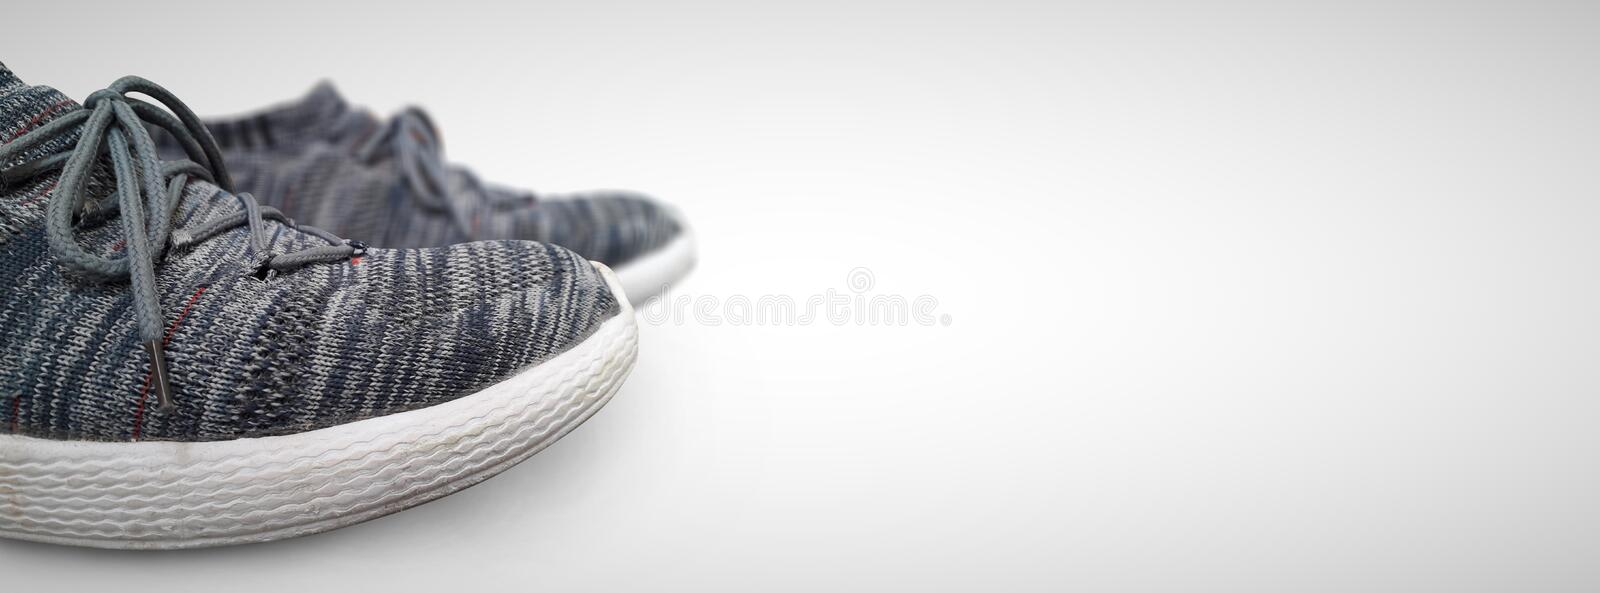 Closeup of grey fashion sports shoes isolated in white background wide photo.  royalty free stock photo